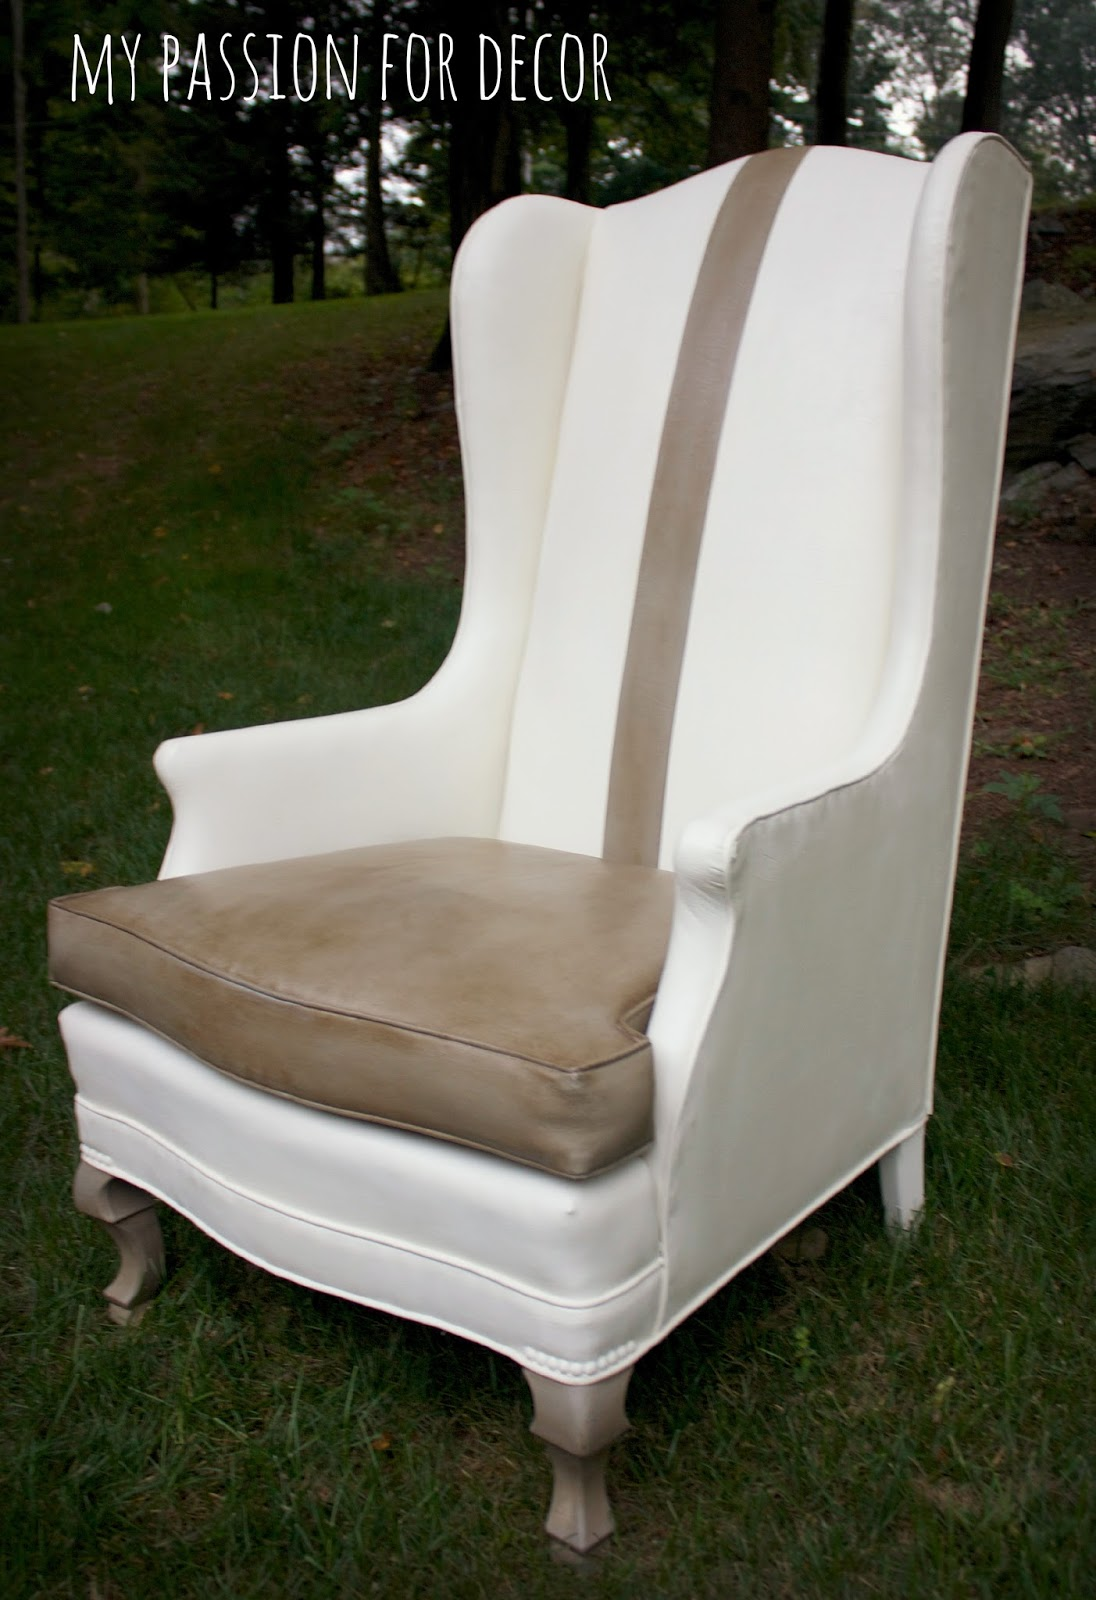 recovering chair cushions vinyl repair seat webbing my passion for decor a much needed update an old